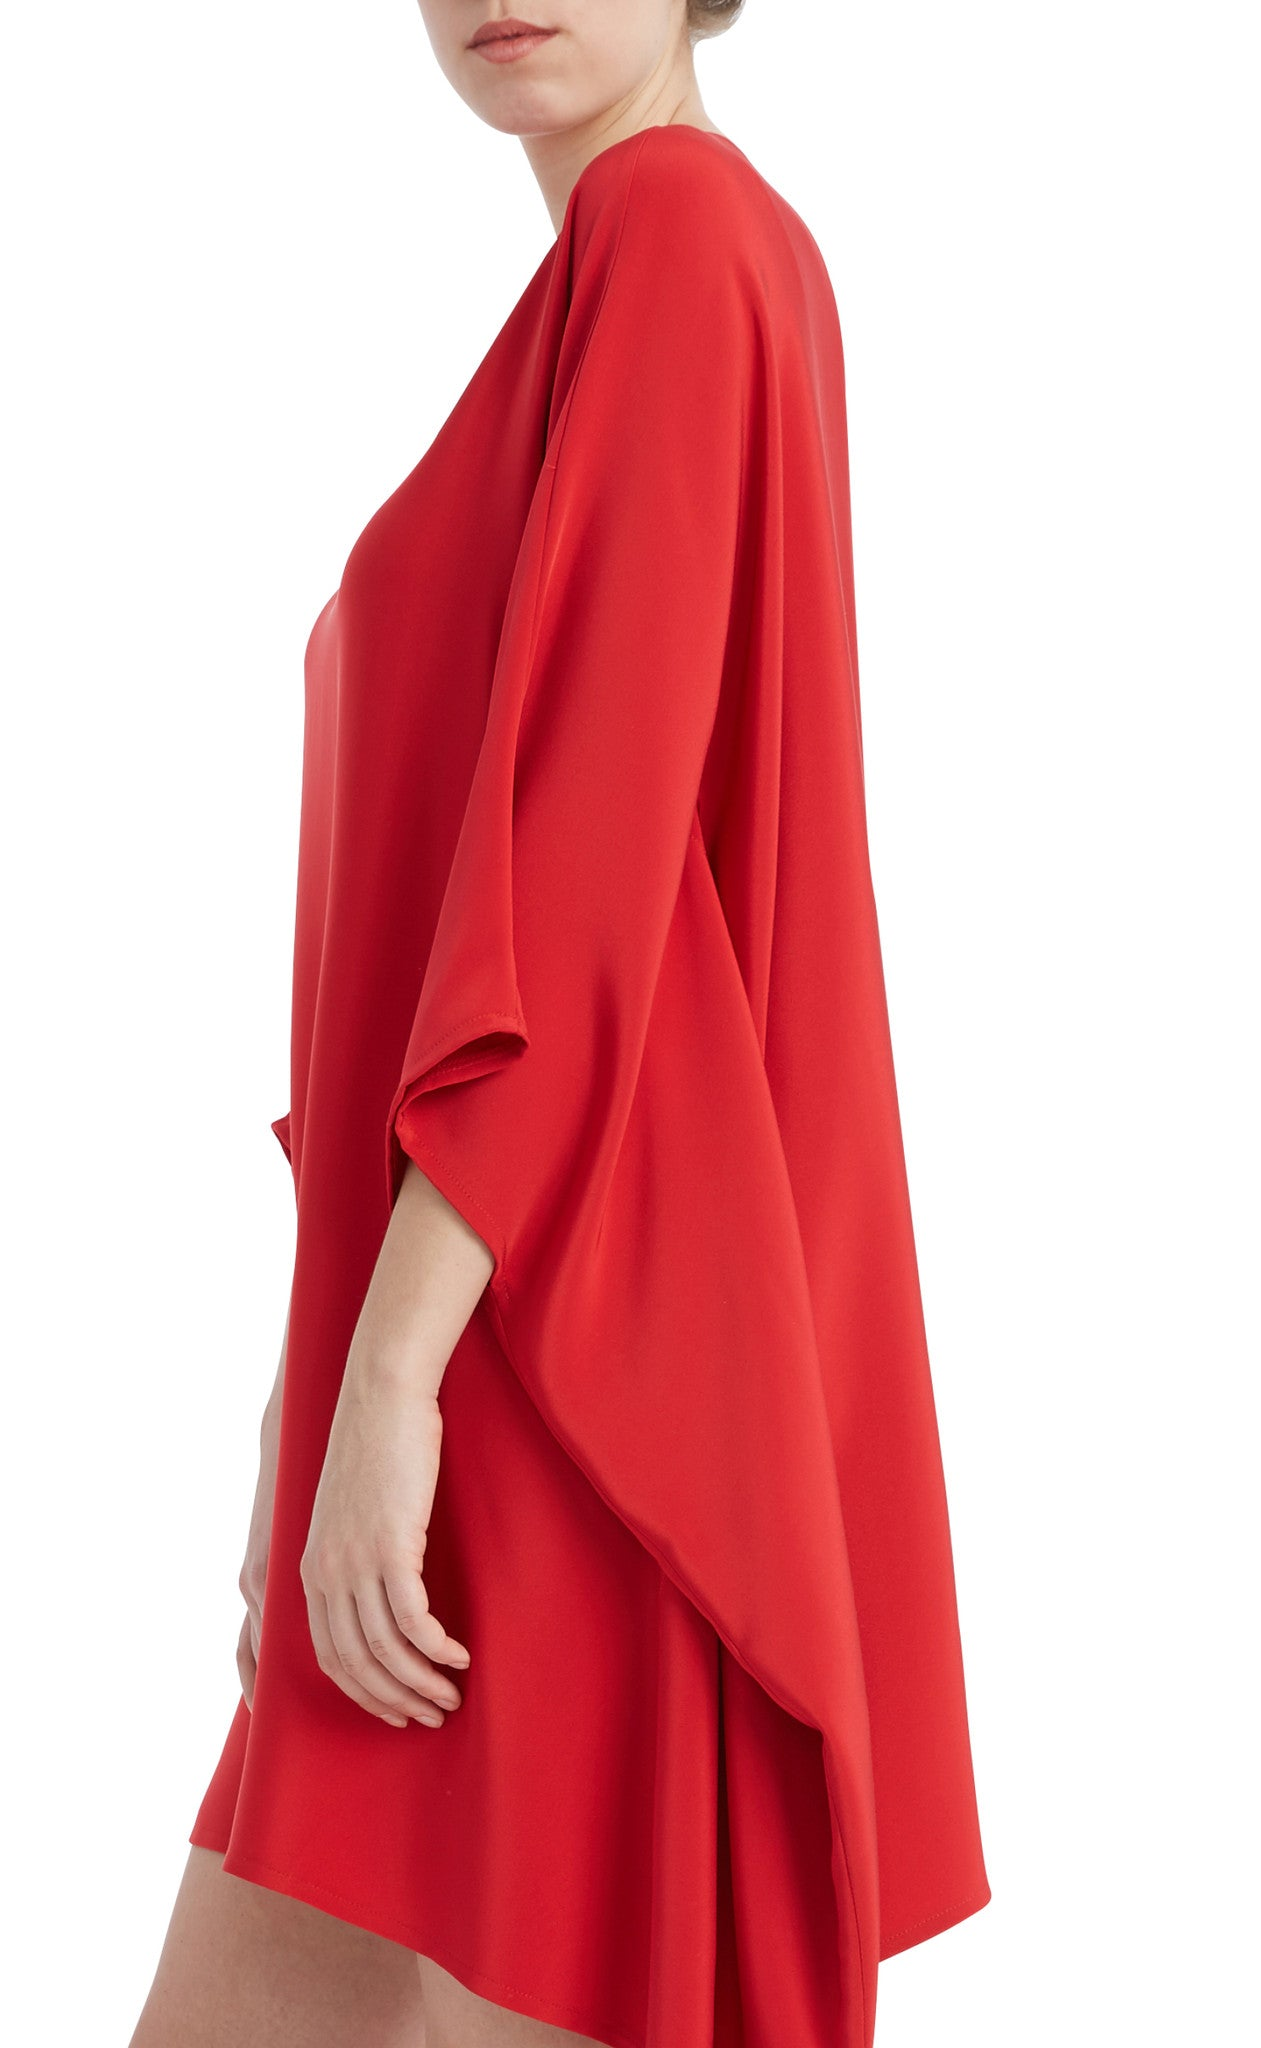 editions de robes SS17 collection cocktail sora red dress